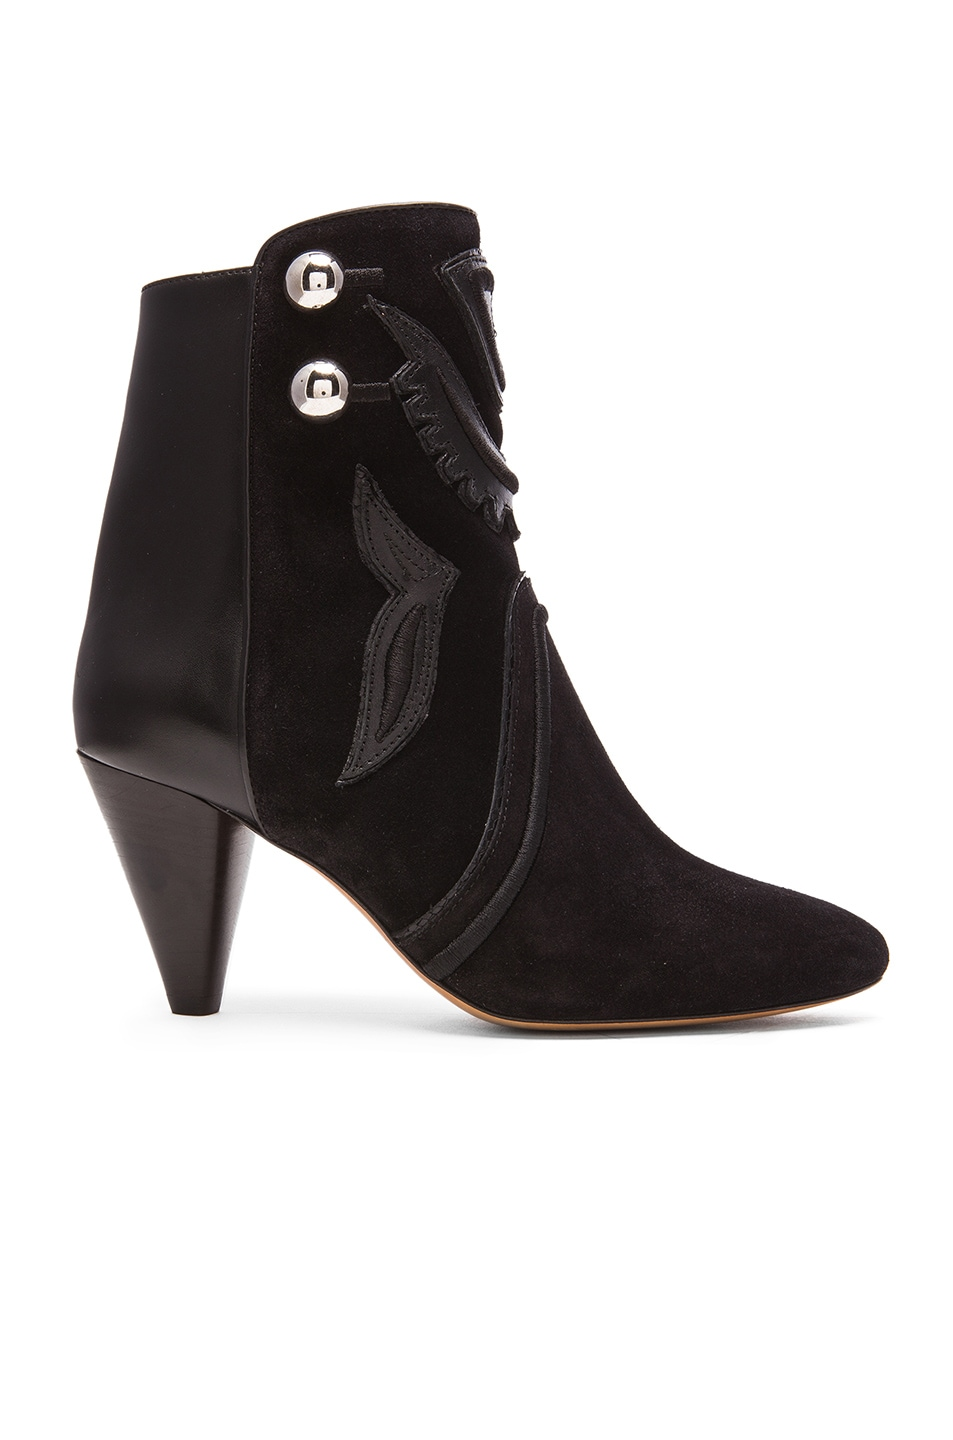 Image 1 of Isabel Marant Lola Farrah Leather Booties in Black